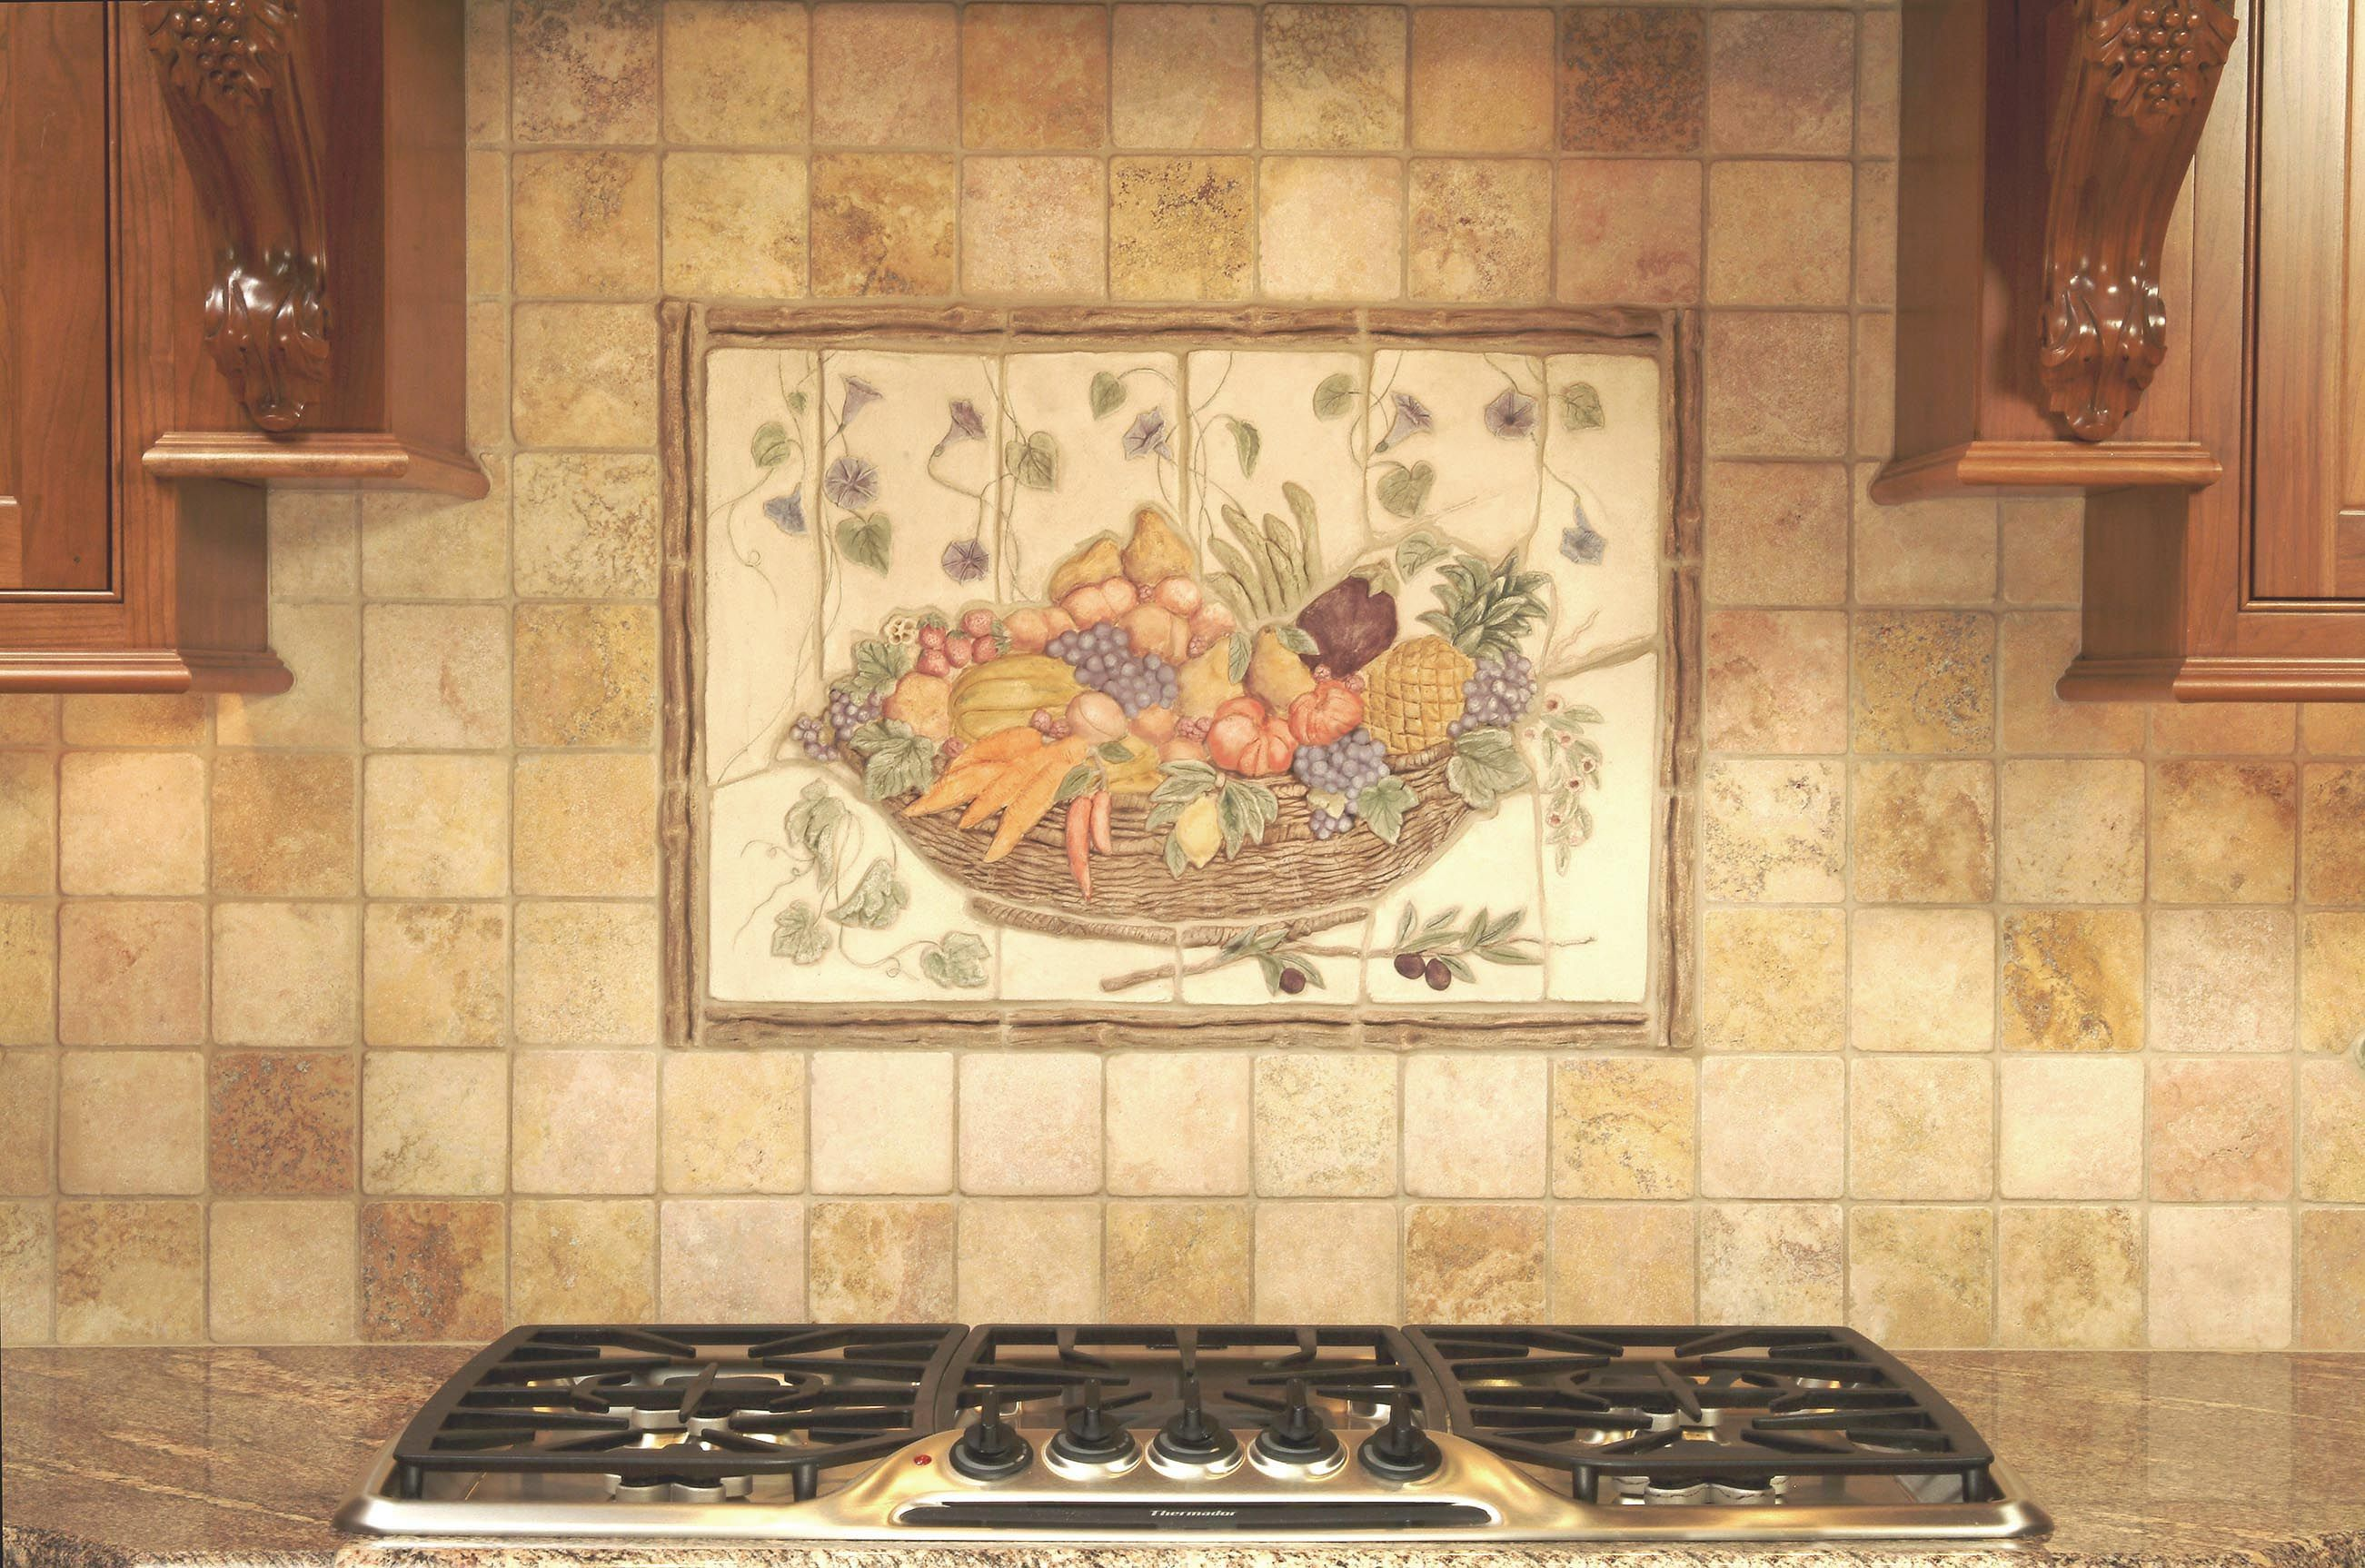 Unique Kitchen Wall Mural Ideas Pictures - The Wall Art Decorations ...